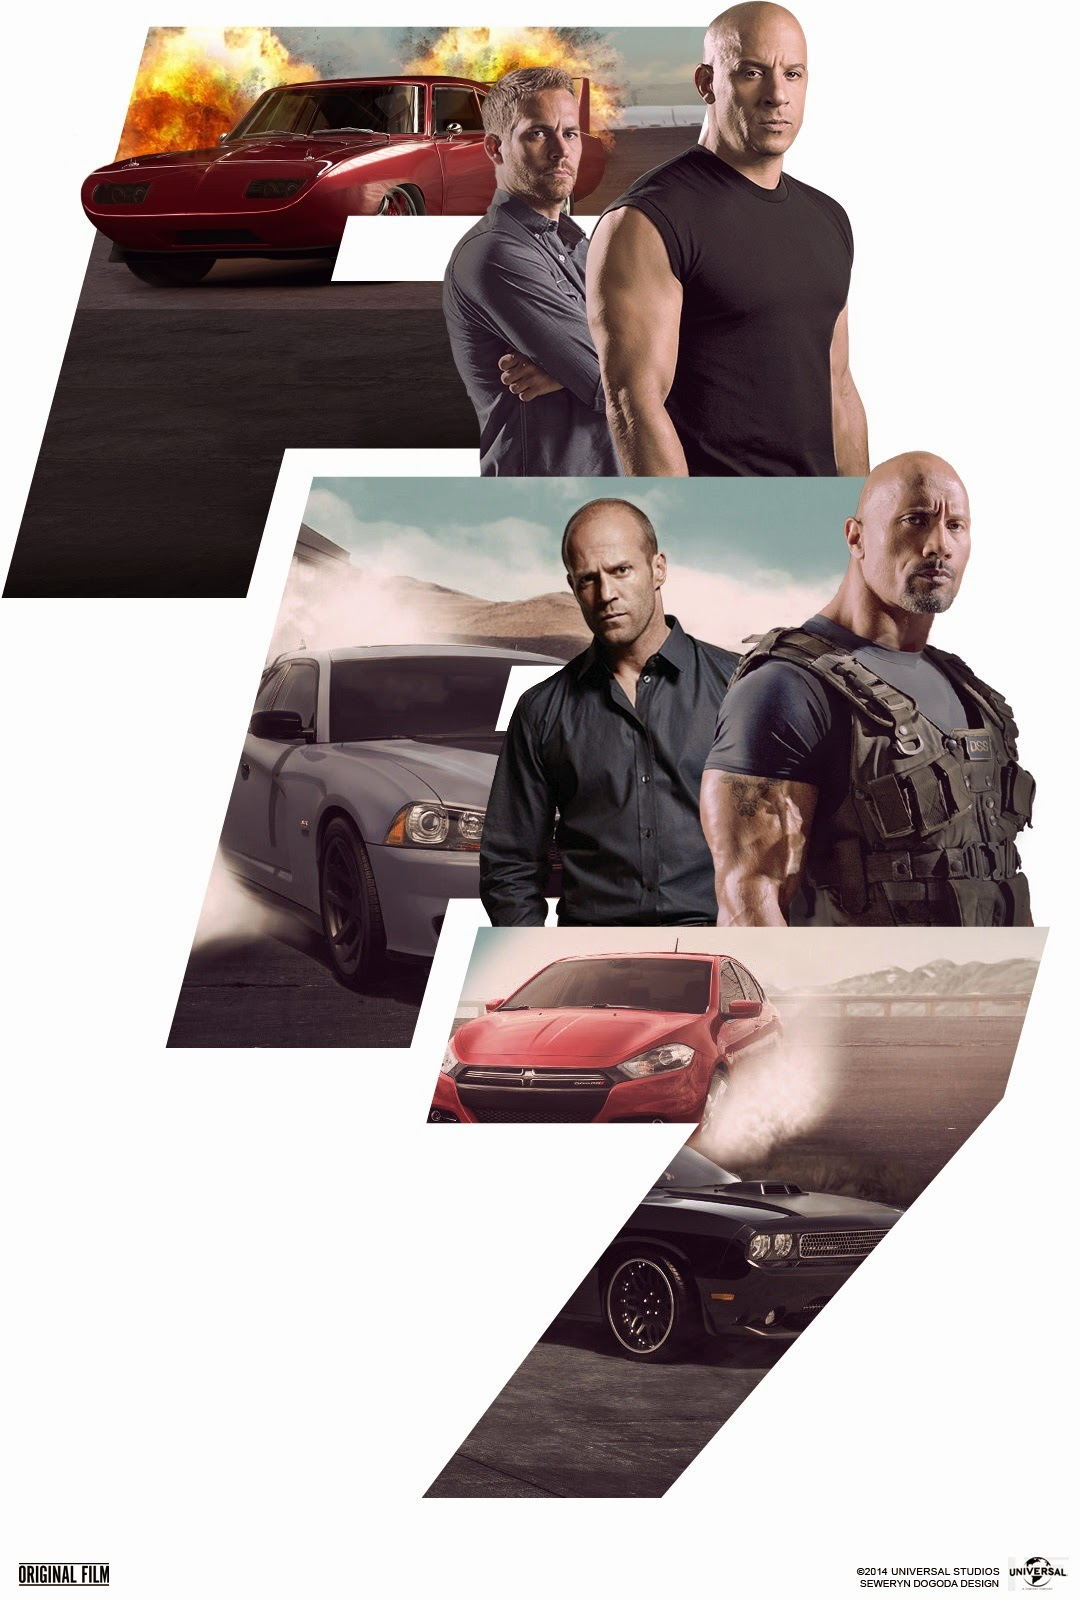 Fast & Furious 7, Furious 7, Directed by James Wan, Movie Poster, starring Vin Diesel, Dwayne Johnson, Paul Walker